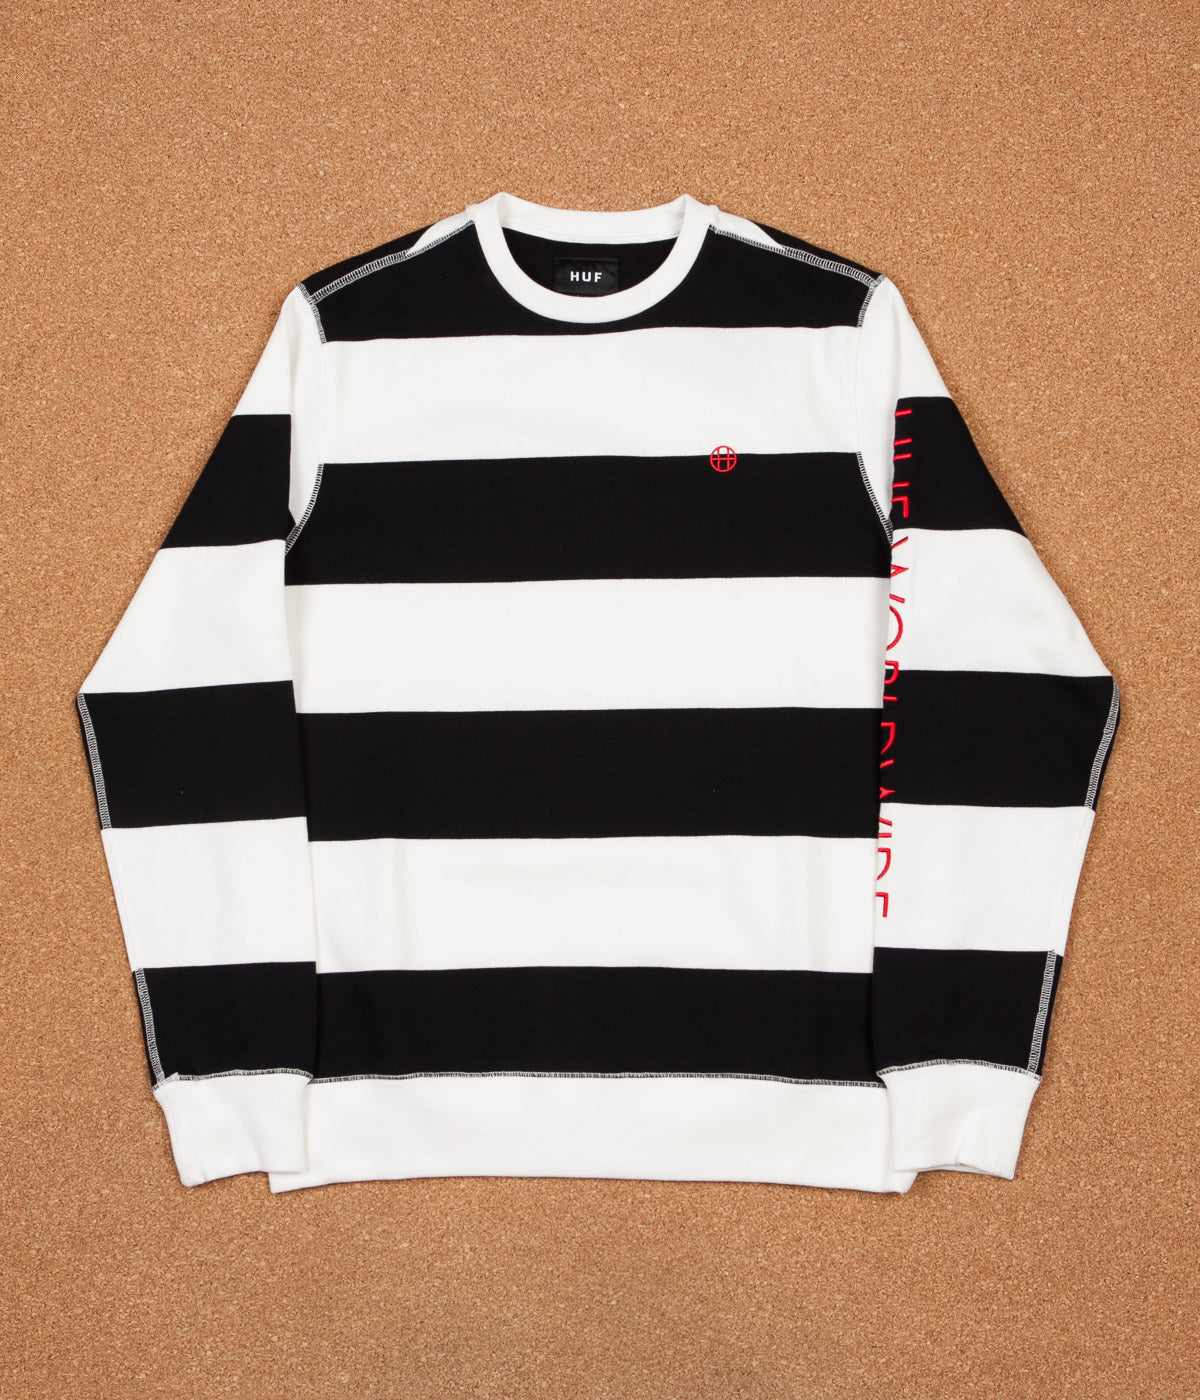 HUF Catalina Stripe Crewneck Sweatshirt - Black